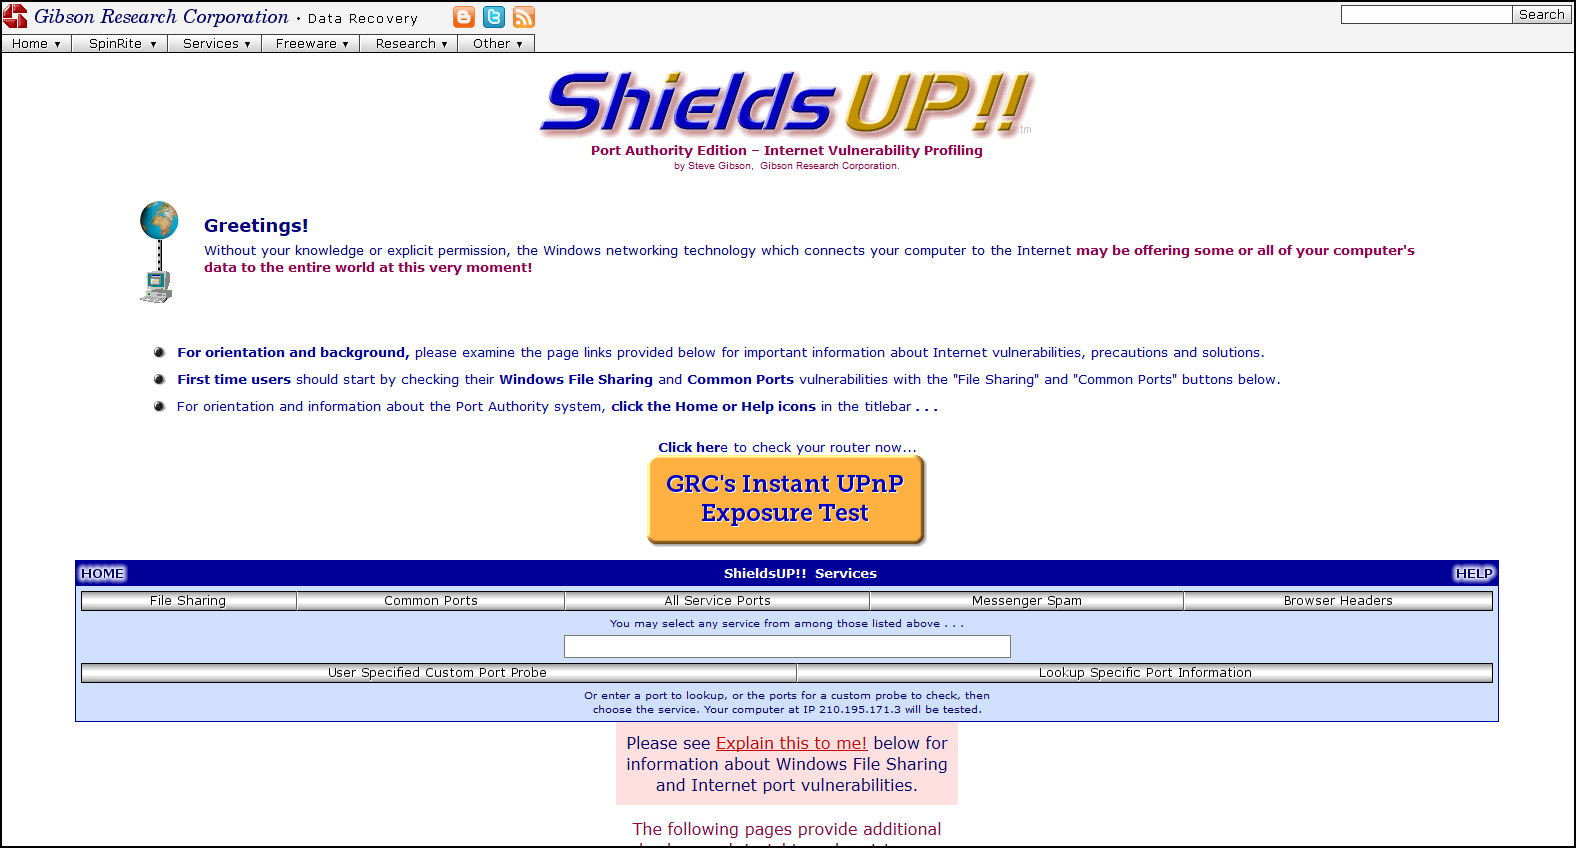 8 Sites To Test Your AntiVirus - Download Harmless Virus